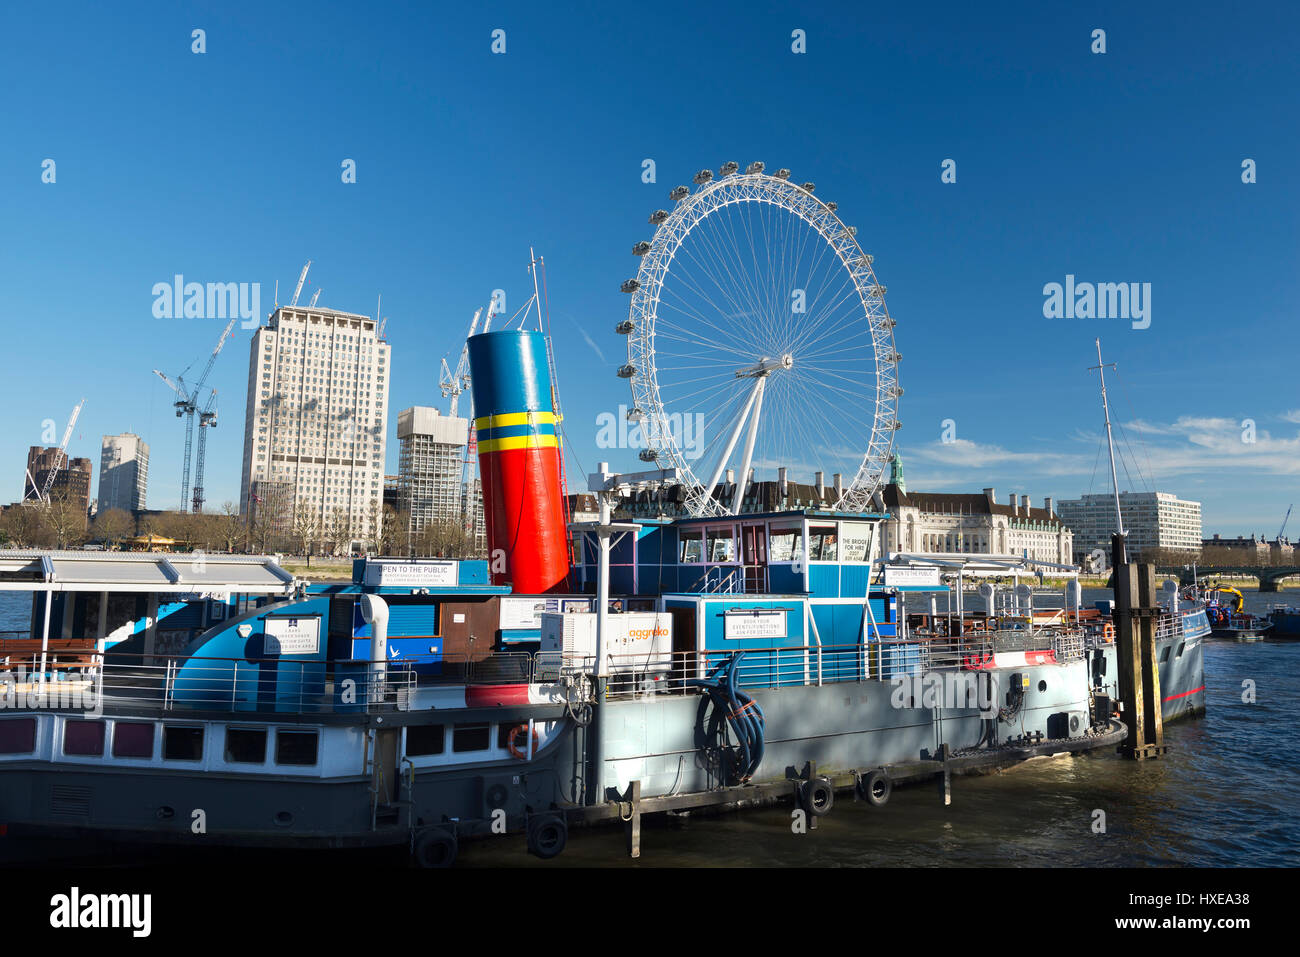 The PS Tattershall Castle restaurant boat on the River Thames with the London Eye and County Hall behind, London, Stock Photo